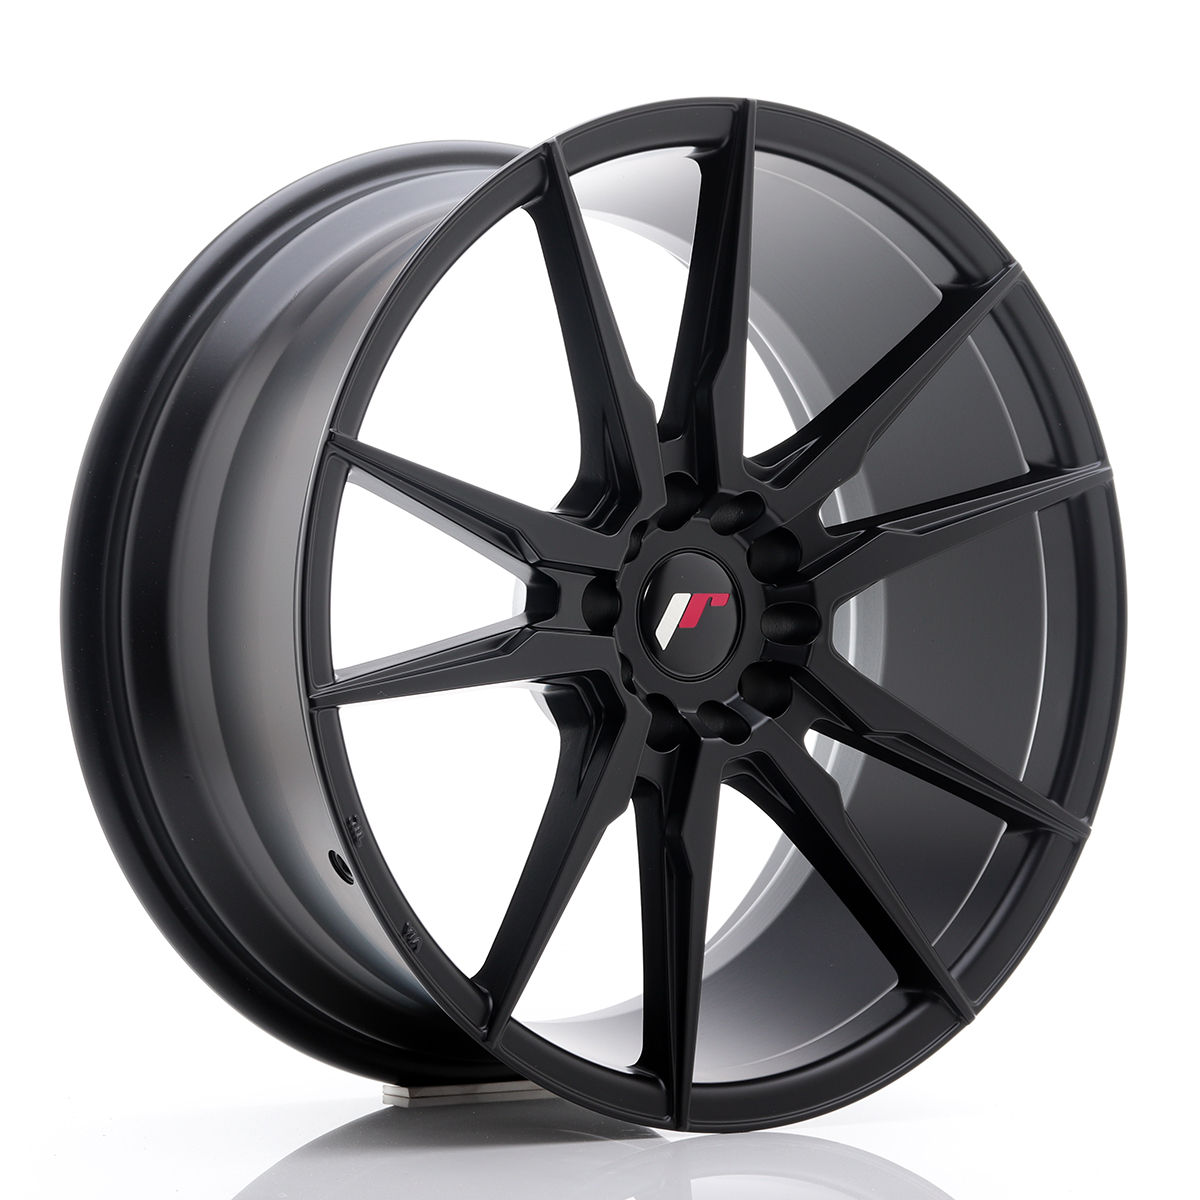 Japan Racing JR Wheels JR21 19x8.5 ET20 5x120 5x114.3 Black